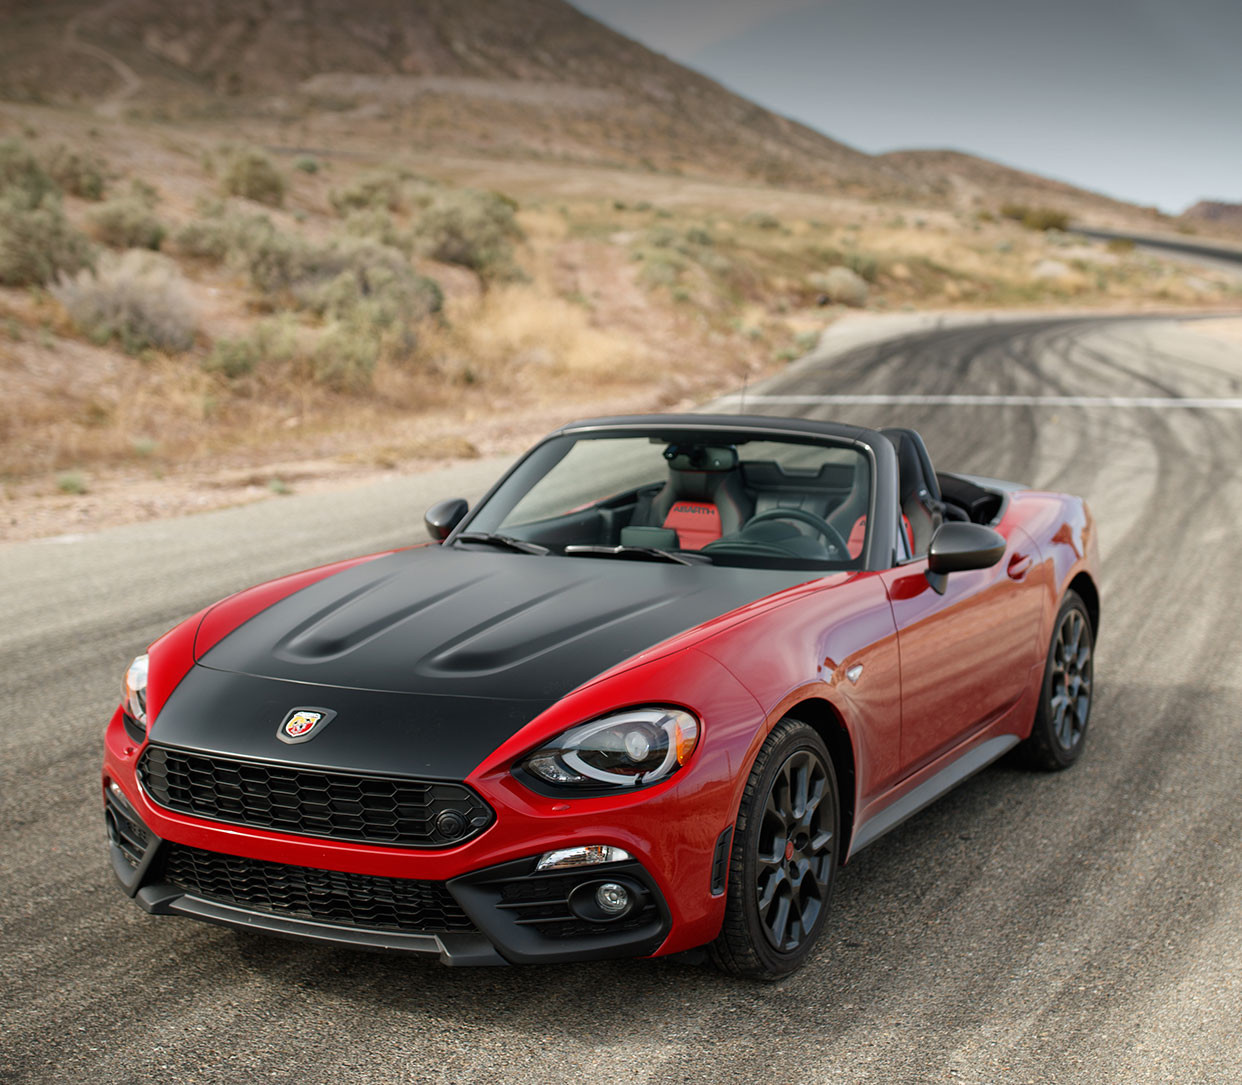 2019 FIAT 124 Spider - Italian Convertible Car